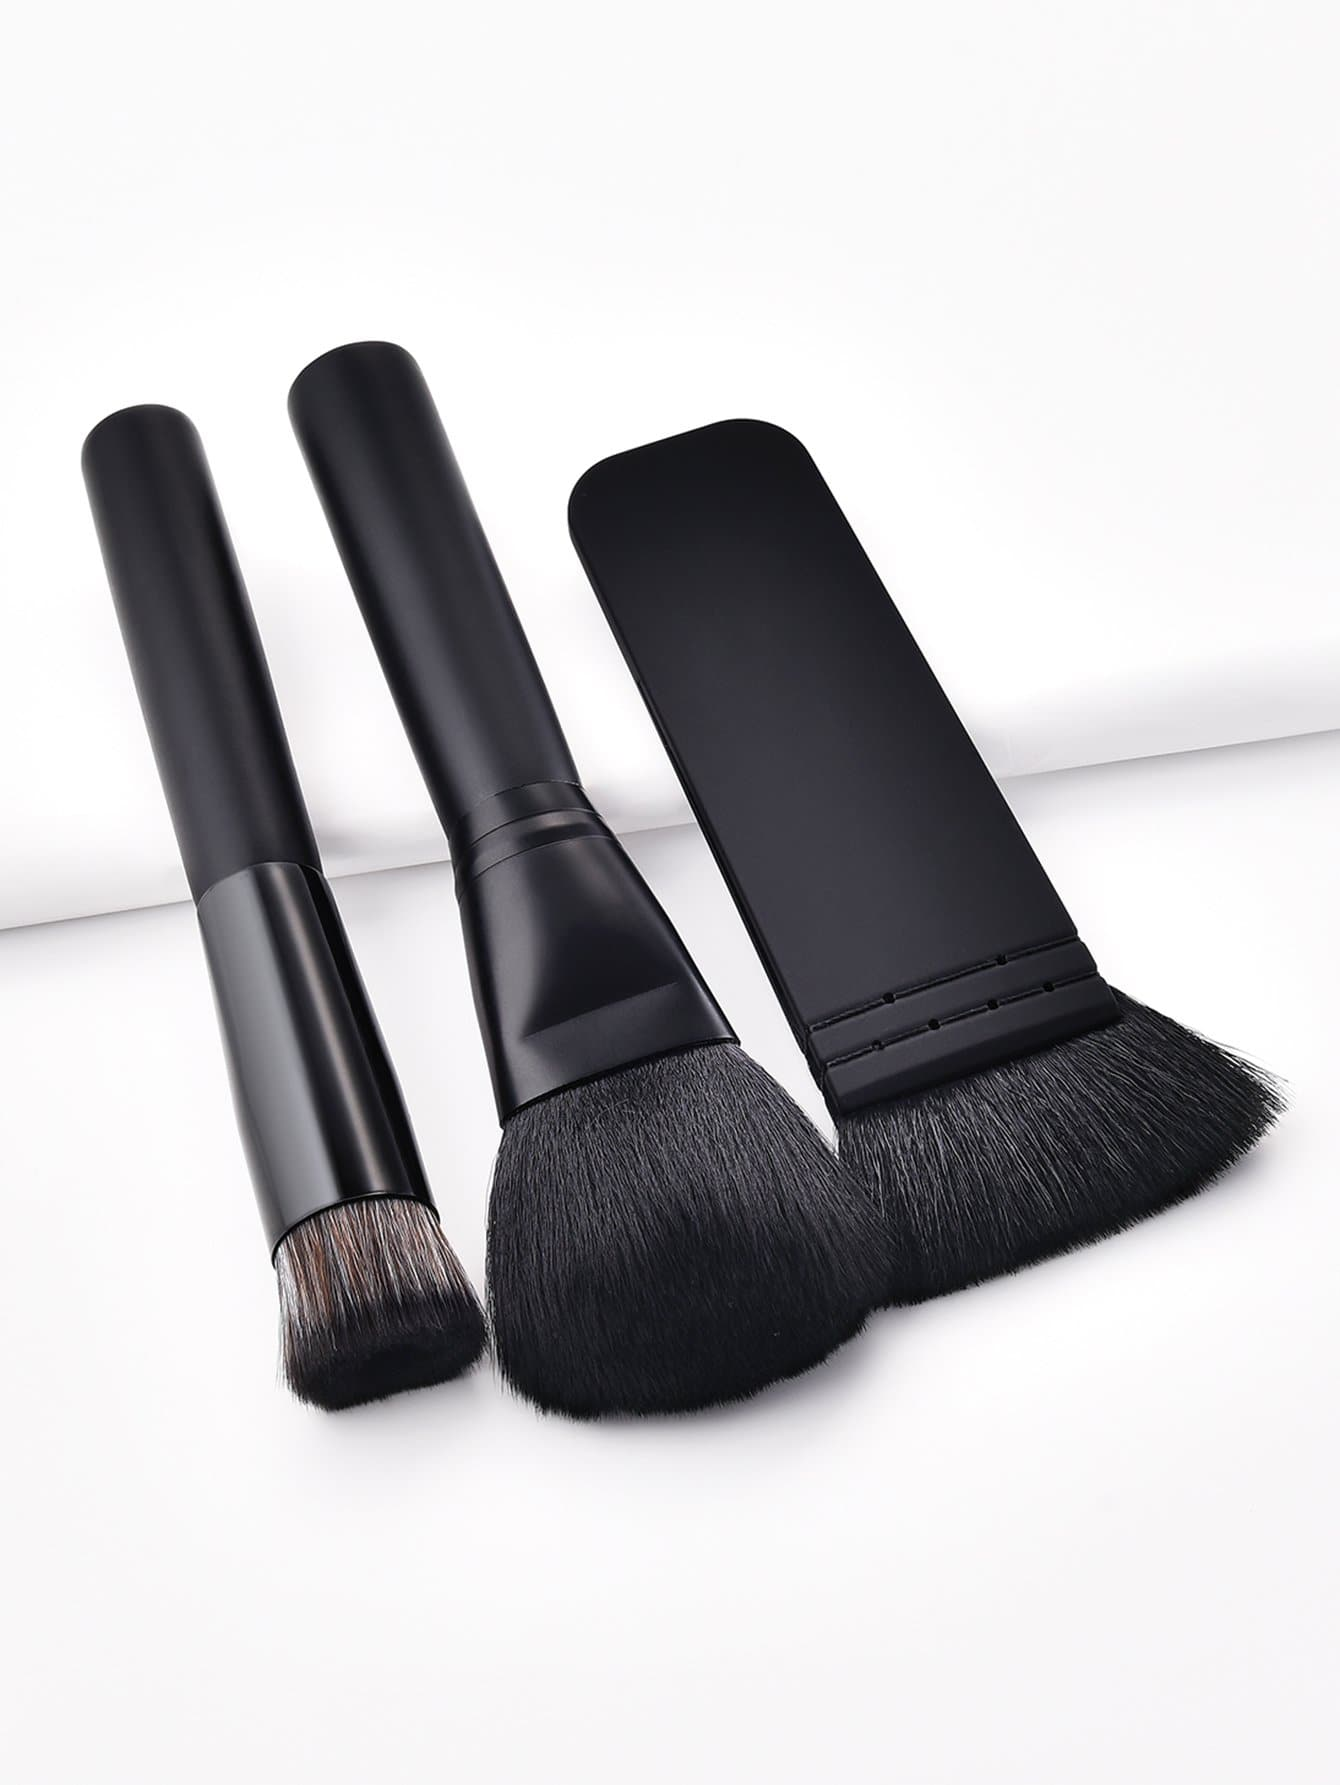 Soft Makeup Brush 3pcs